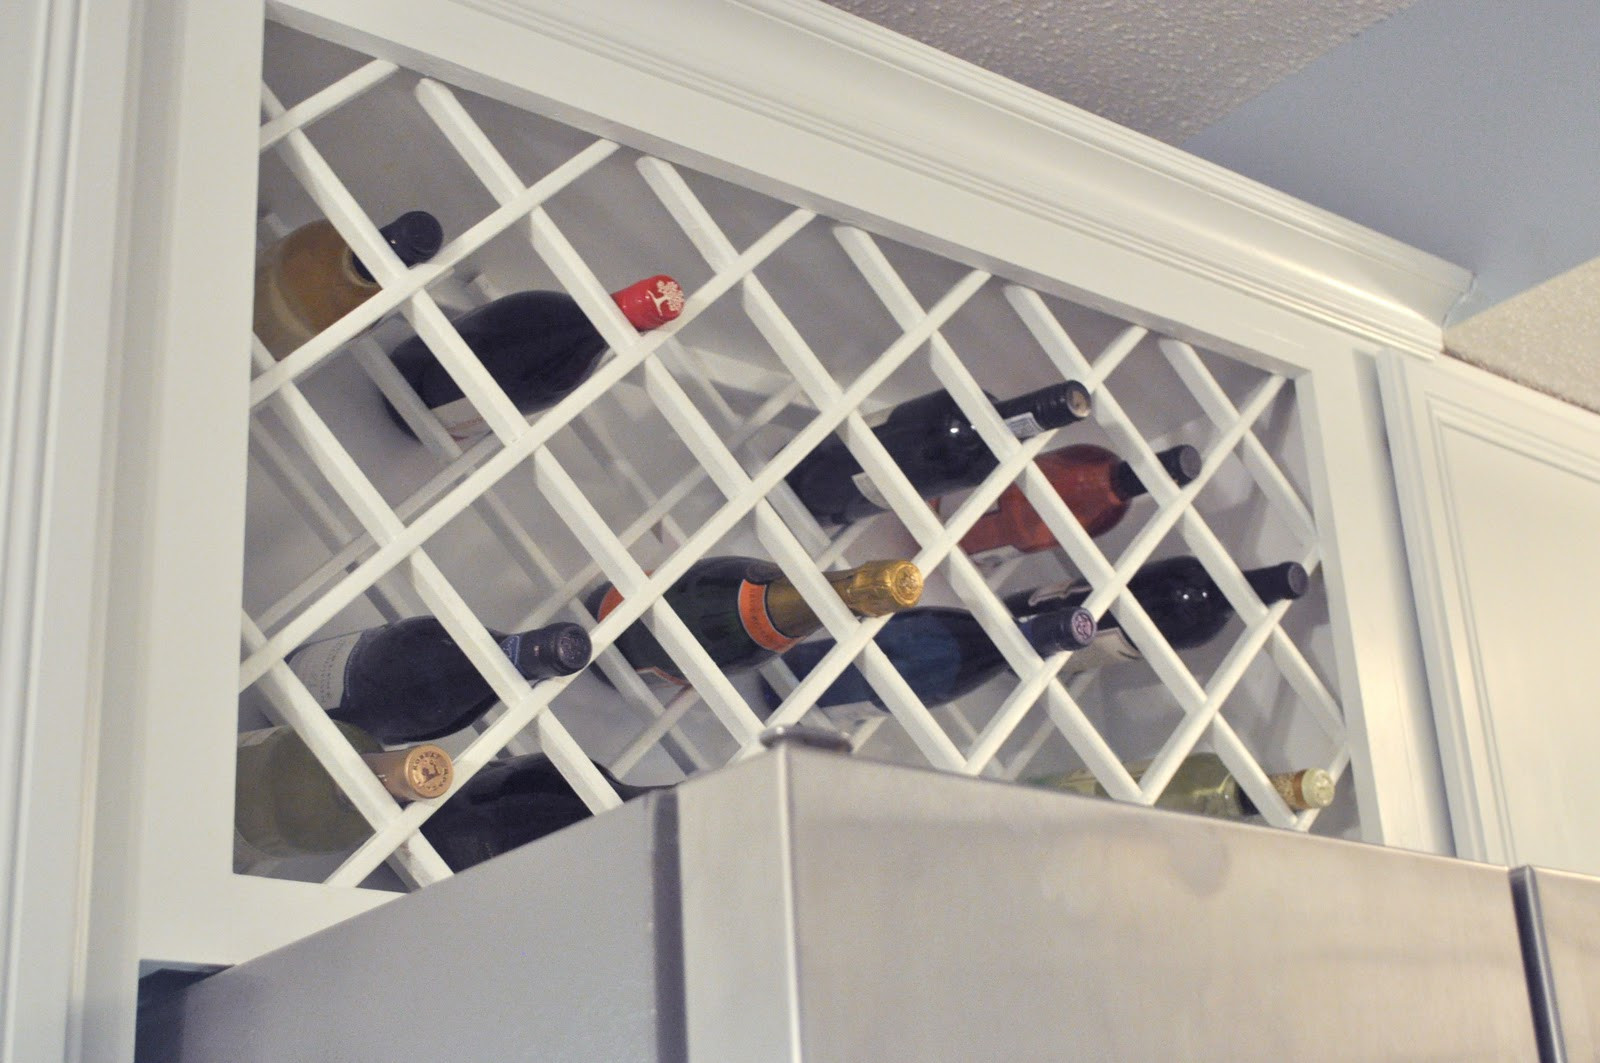 Best ideas about Lattice Wine Rack DIY . Save or Pin Not So Newlywed McGees Cabinet Wine Lattice Now.